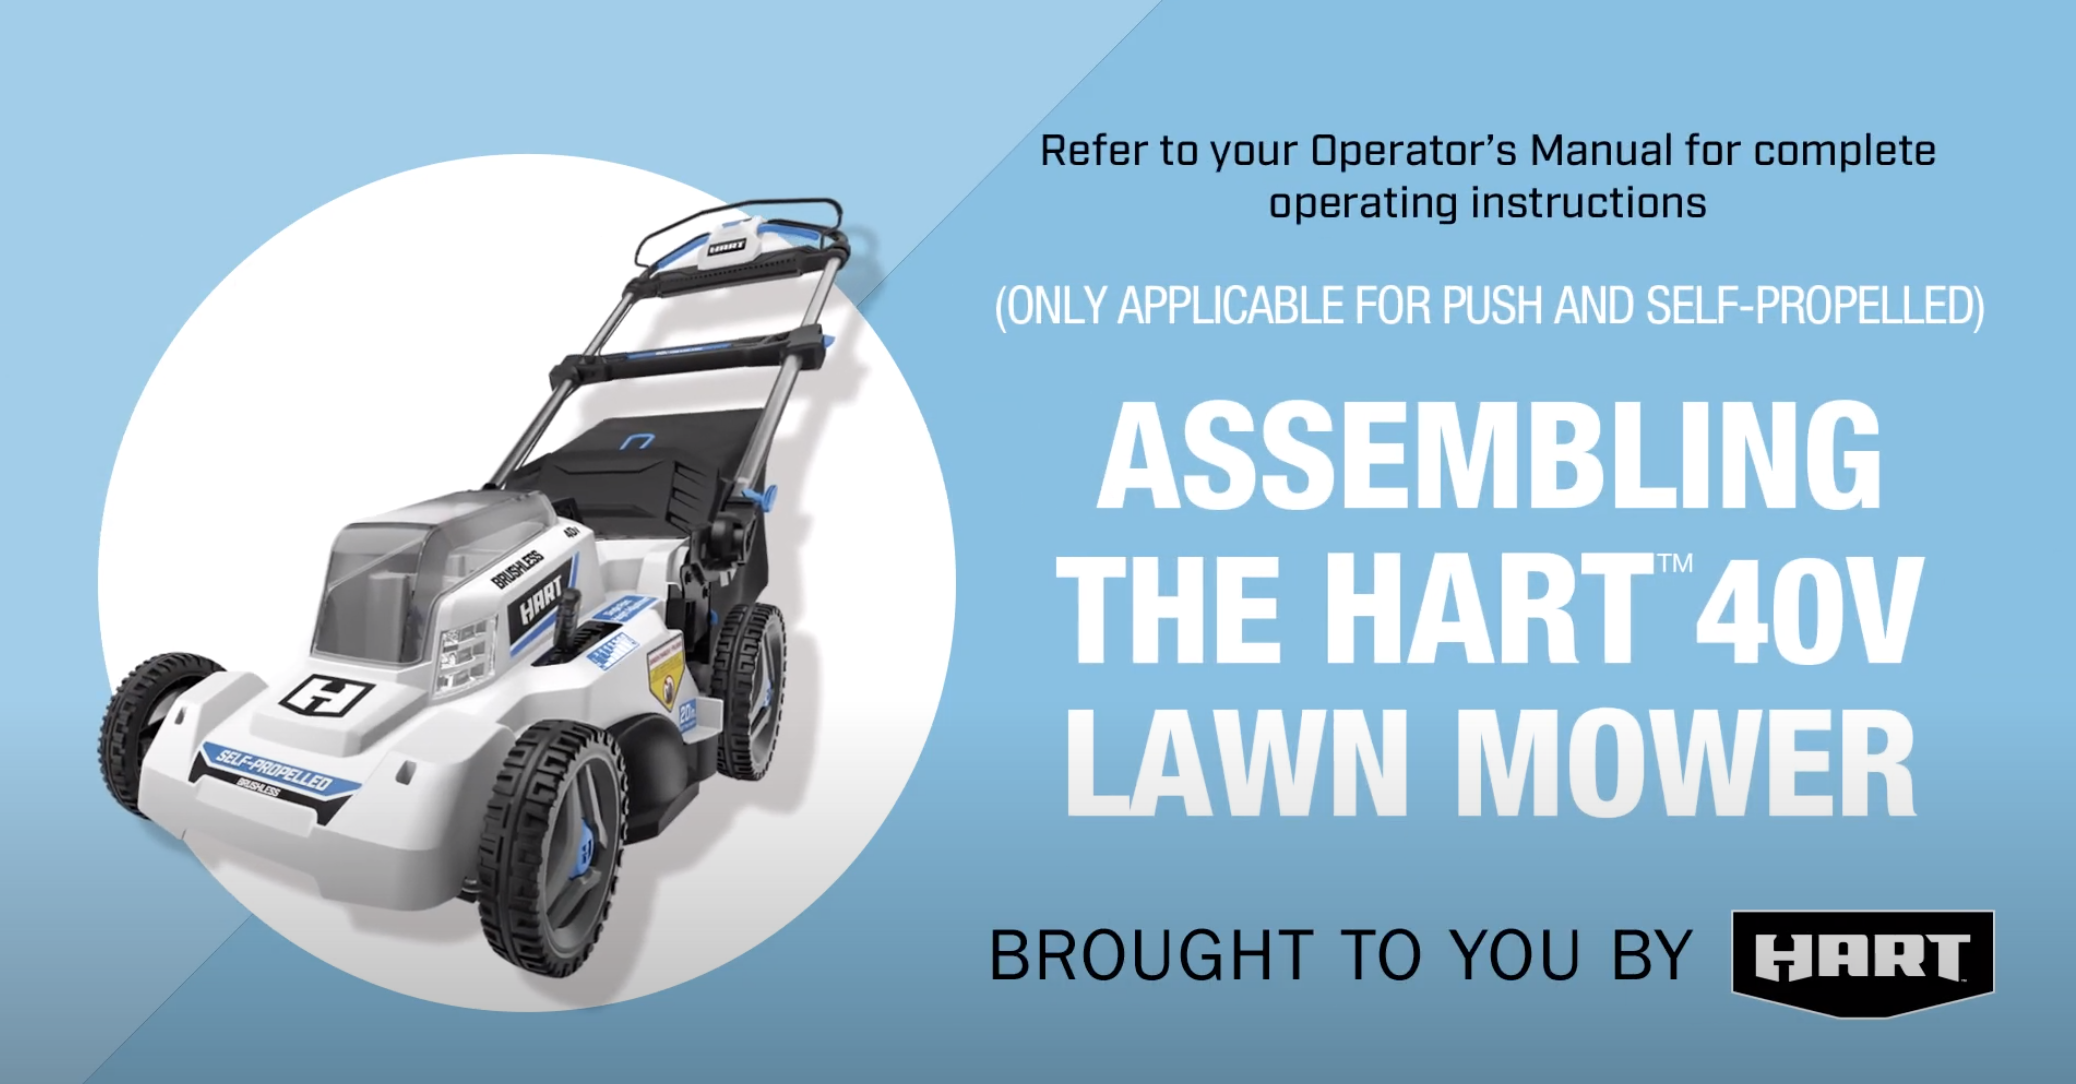 Assemble the HART 40V Lawn Mower